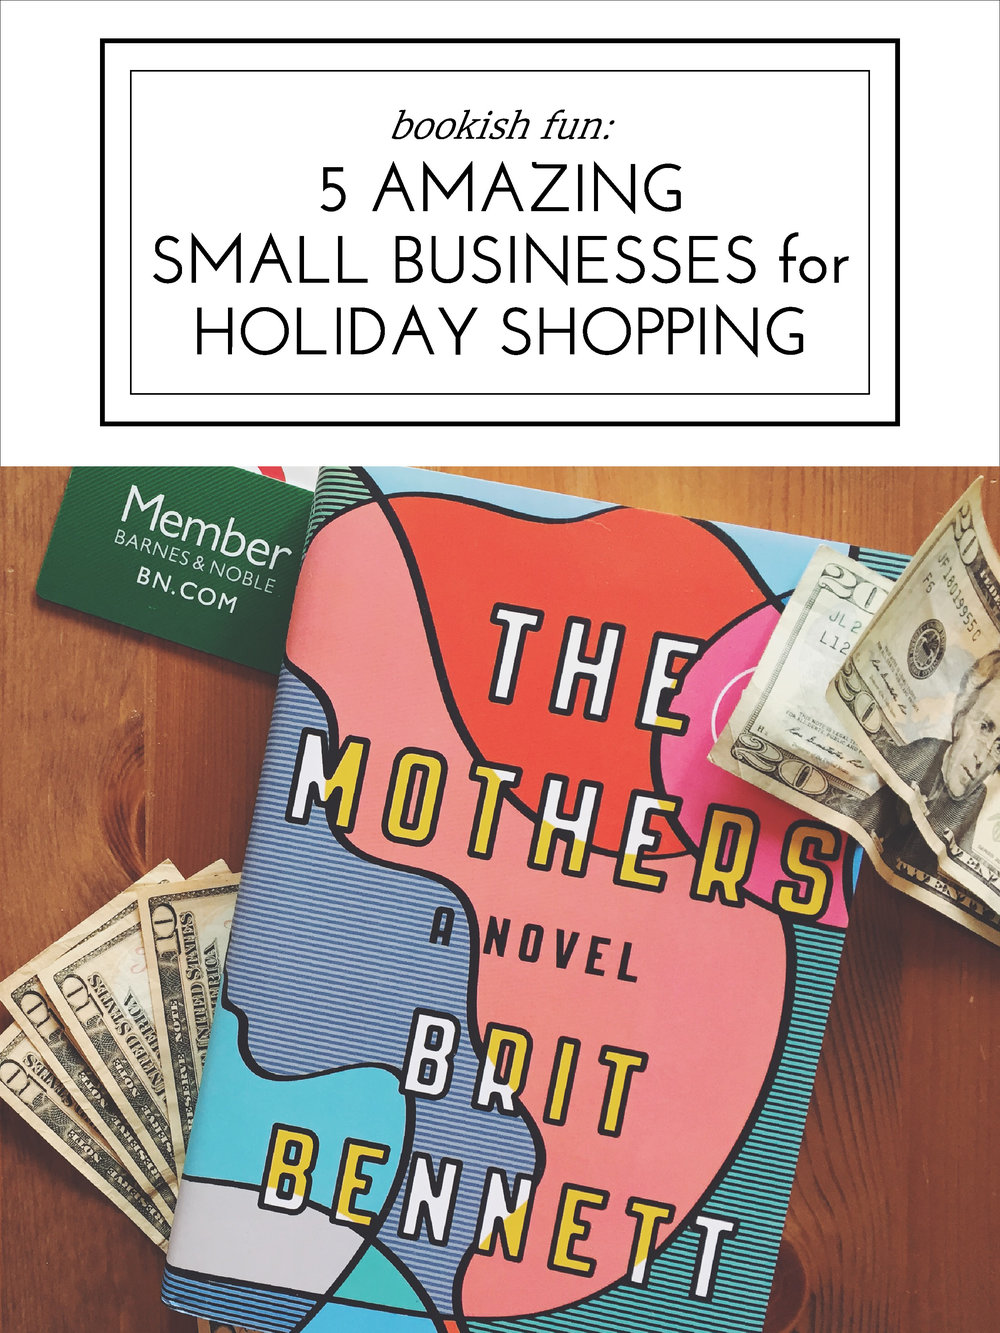 5 Amazing Small Businesses for Holiday Shopping